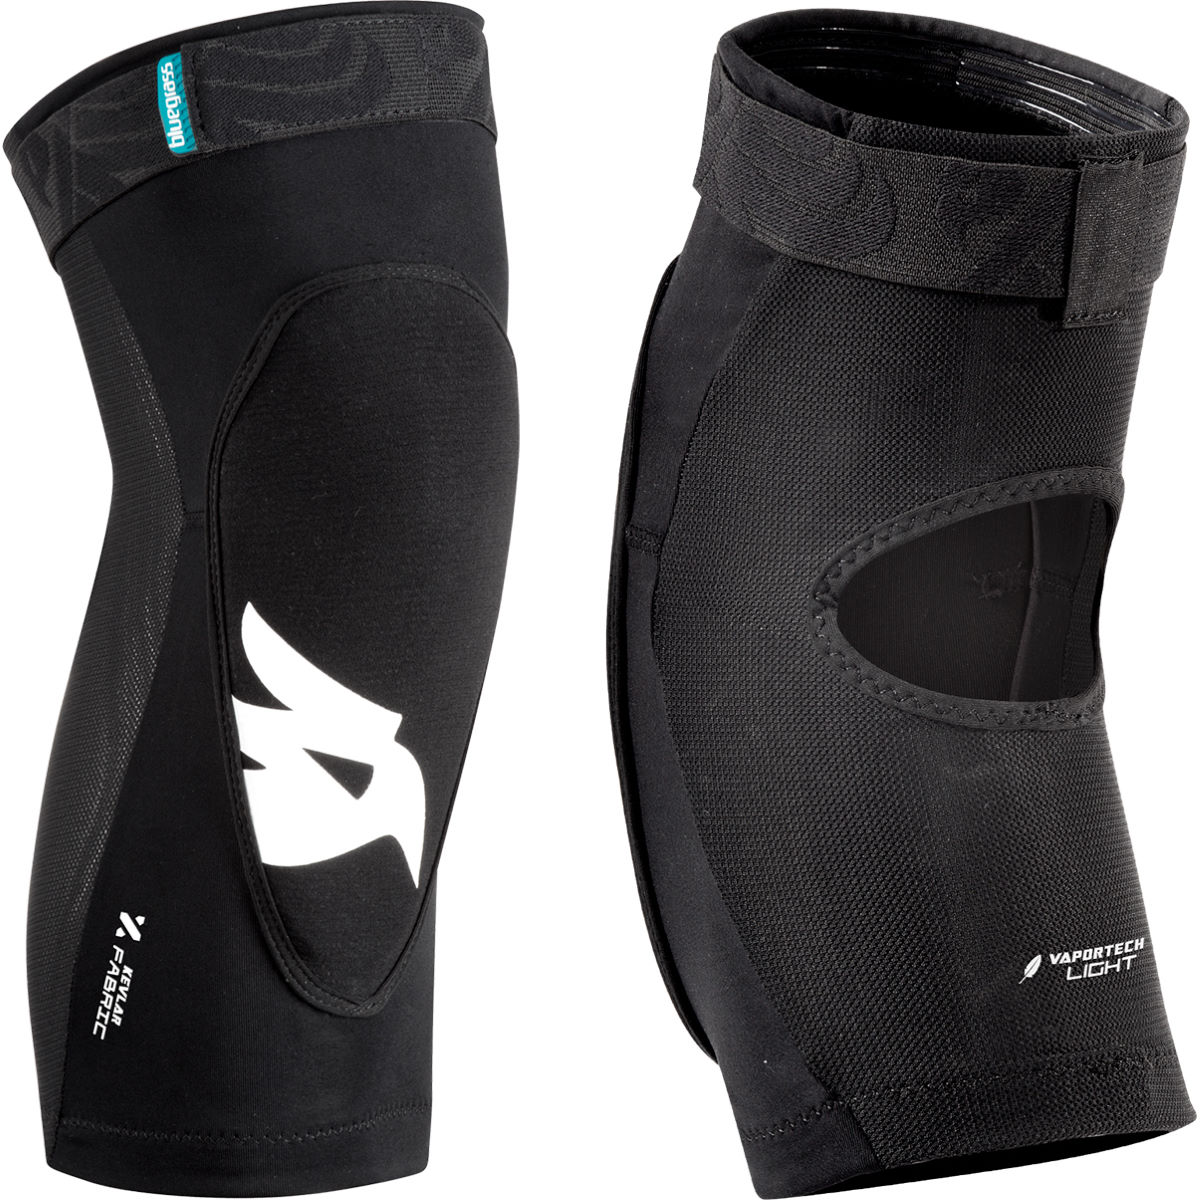 Bluegrass Crossbill Knee Guards - Rodilleras